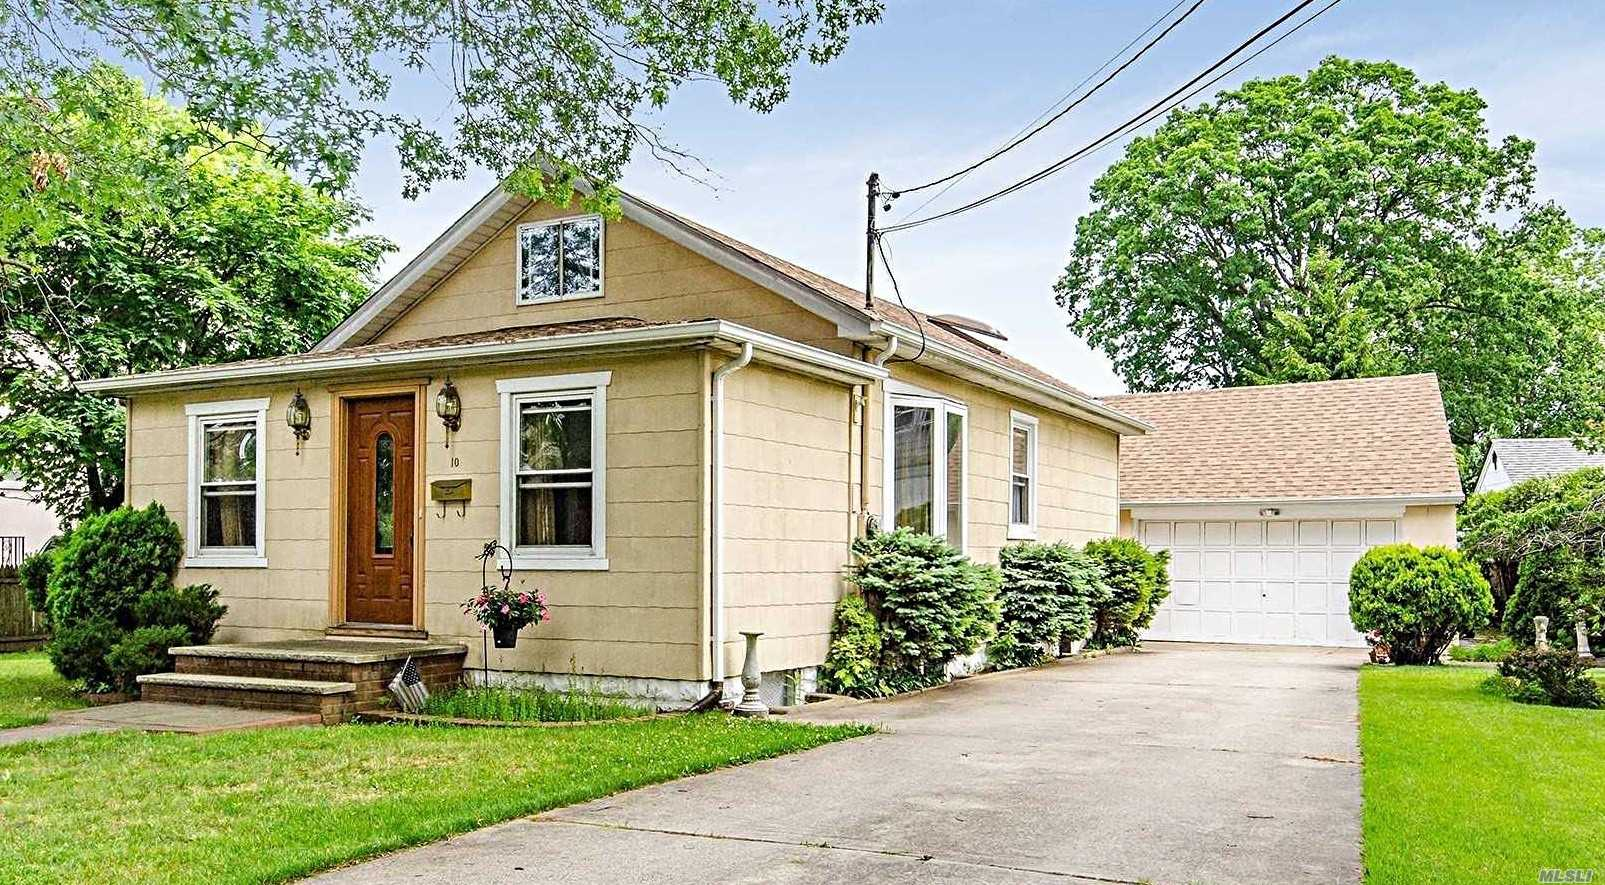 Great Two Bedroom Ranch In Sd# 20! Spacious Rooms With High Ceilings, Beautiful Hard Wood Floors, Lr, Fdr, Eik, Full Basement And Great Finished Walk Up Attic With Skylights! Two Car Detached Garage With Loft And Extra Long Driveway! Lovely Private Yard With Patio! Close To Lirr, Schools And Shopping!